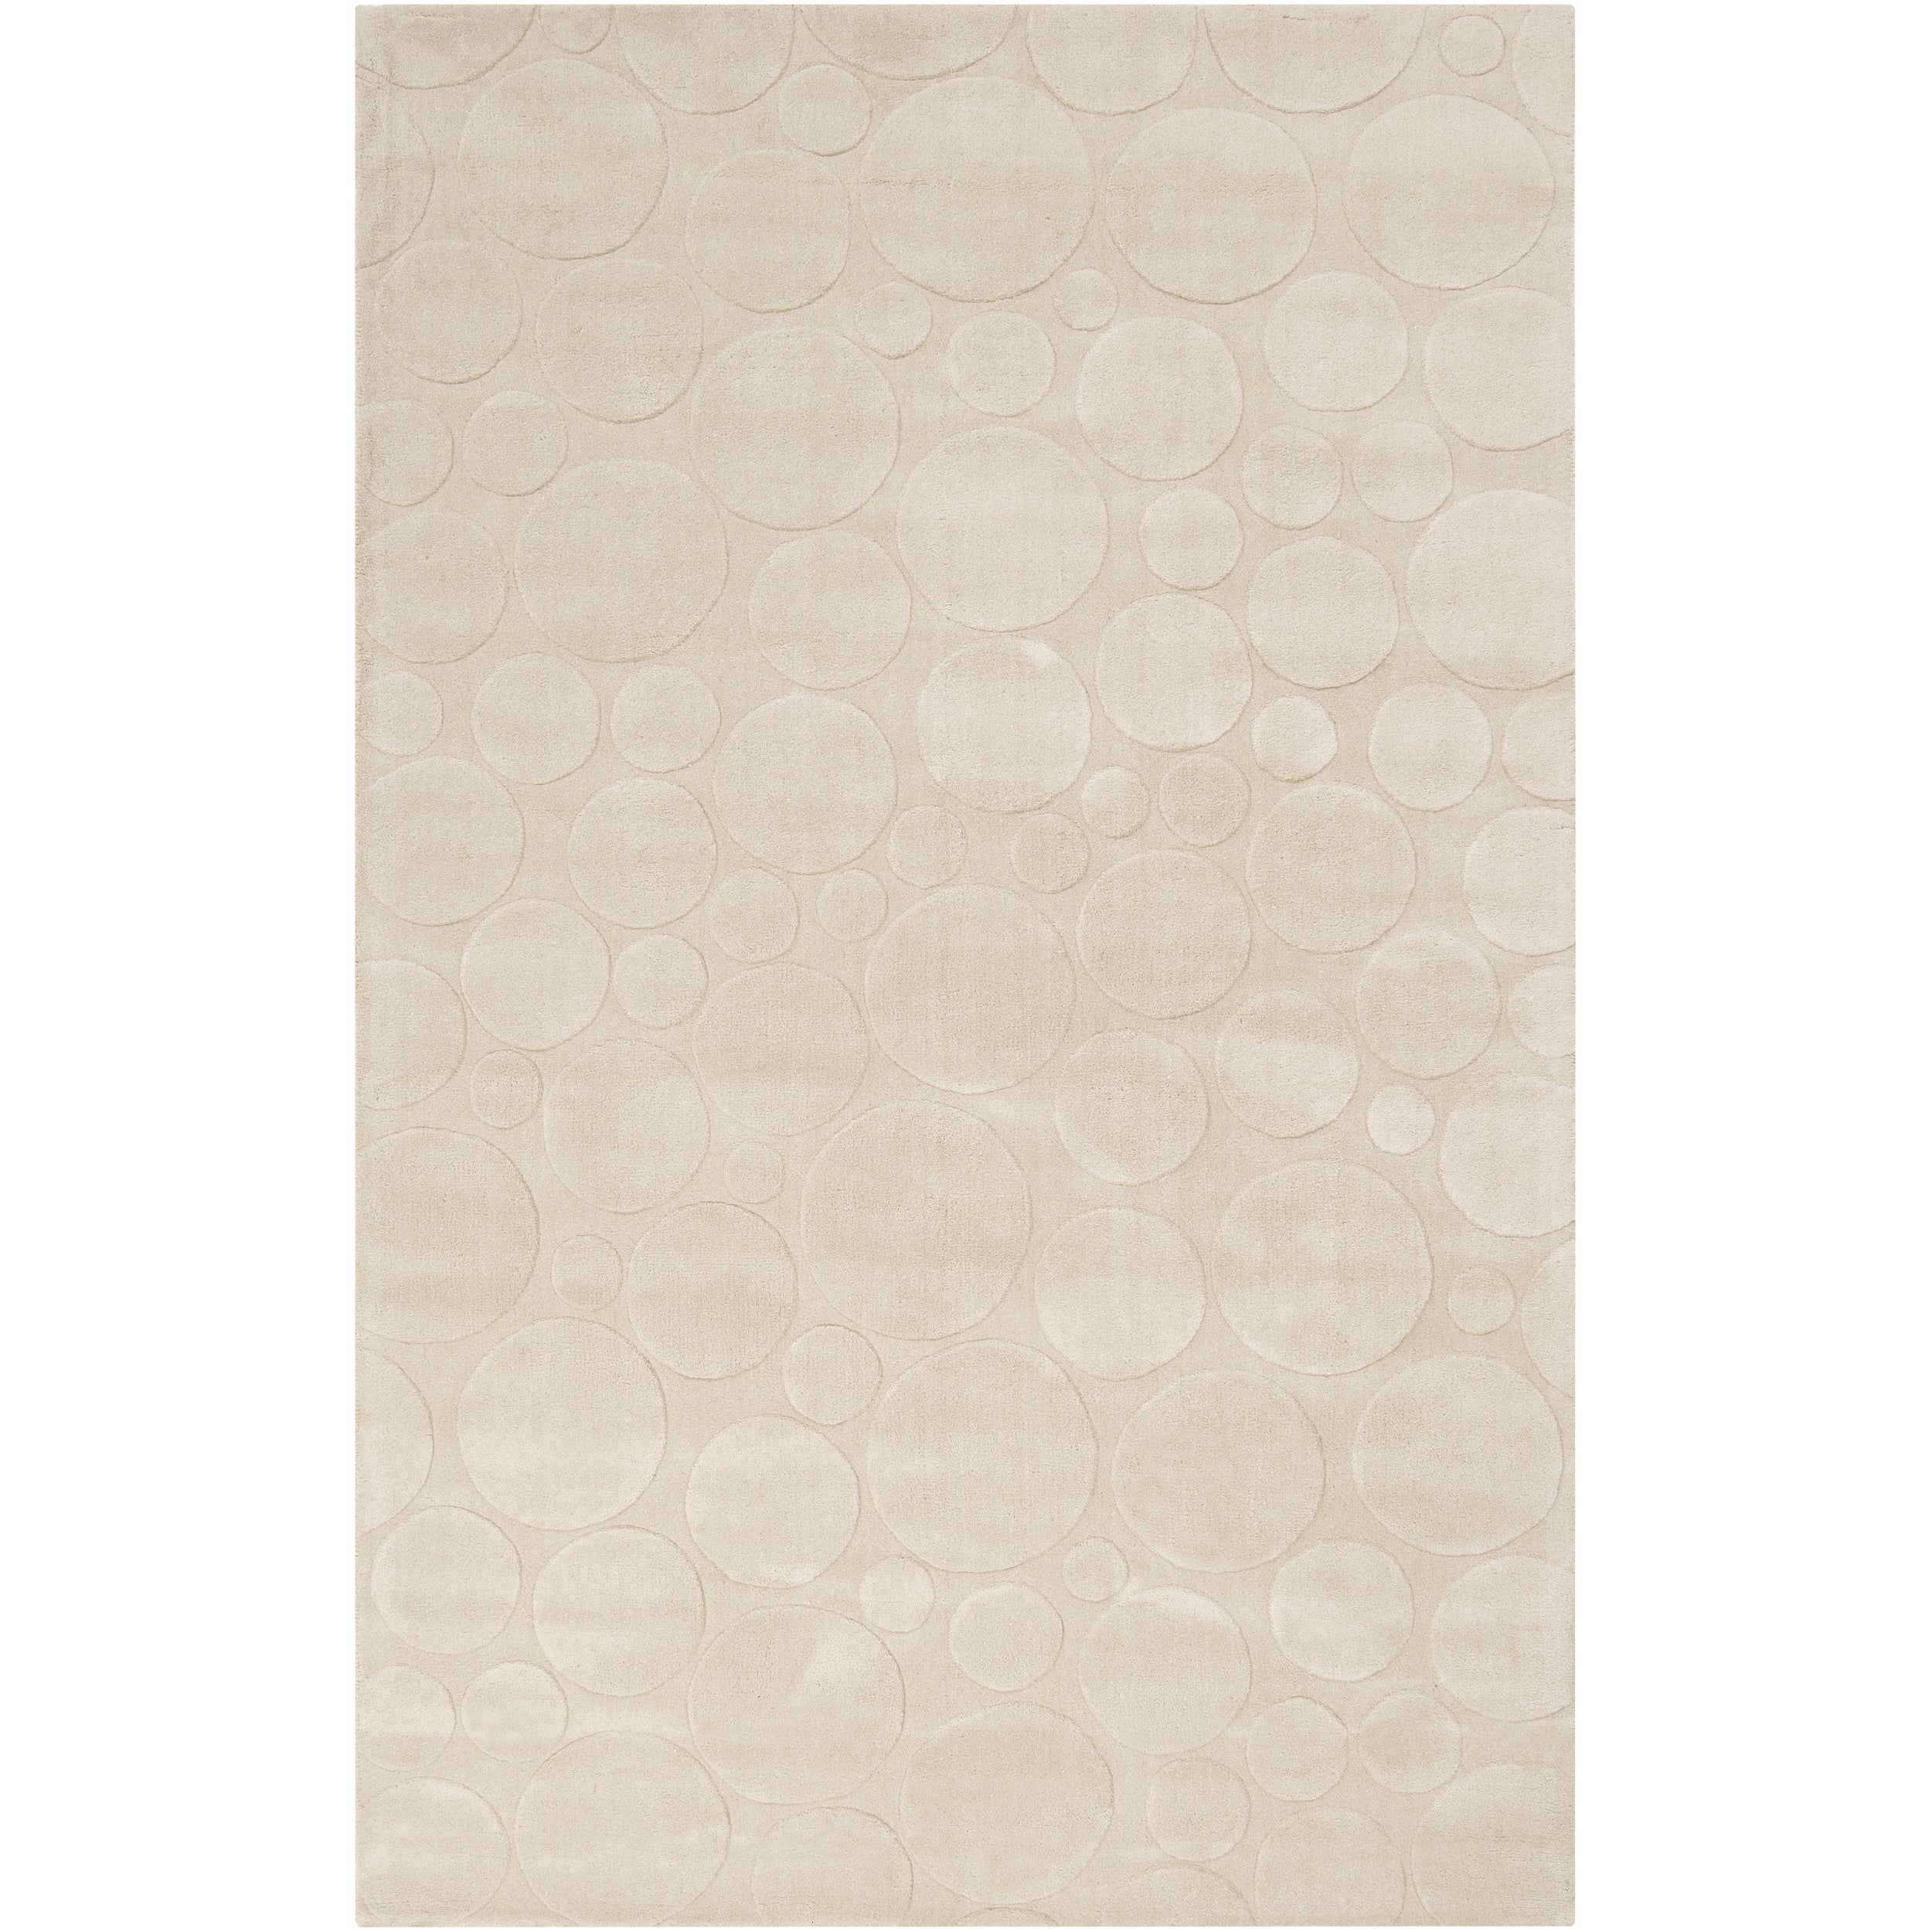 Candice Olson Loomed Cream Scuddle Geometric Circles Wool Rug (9' x 13')